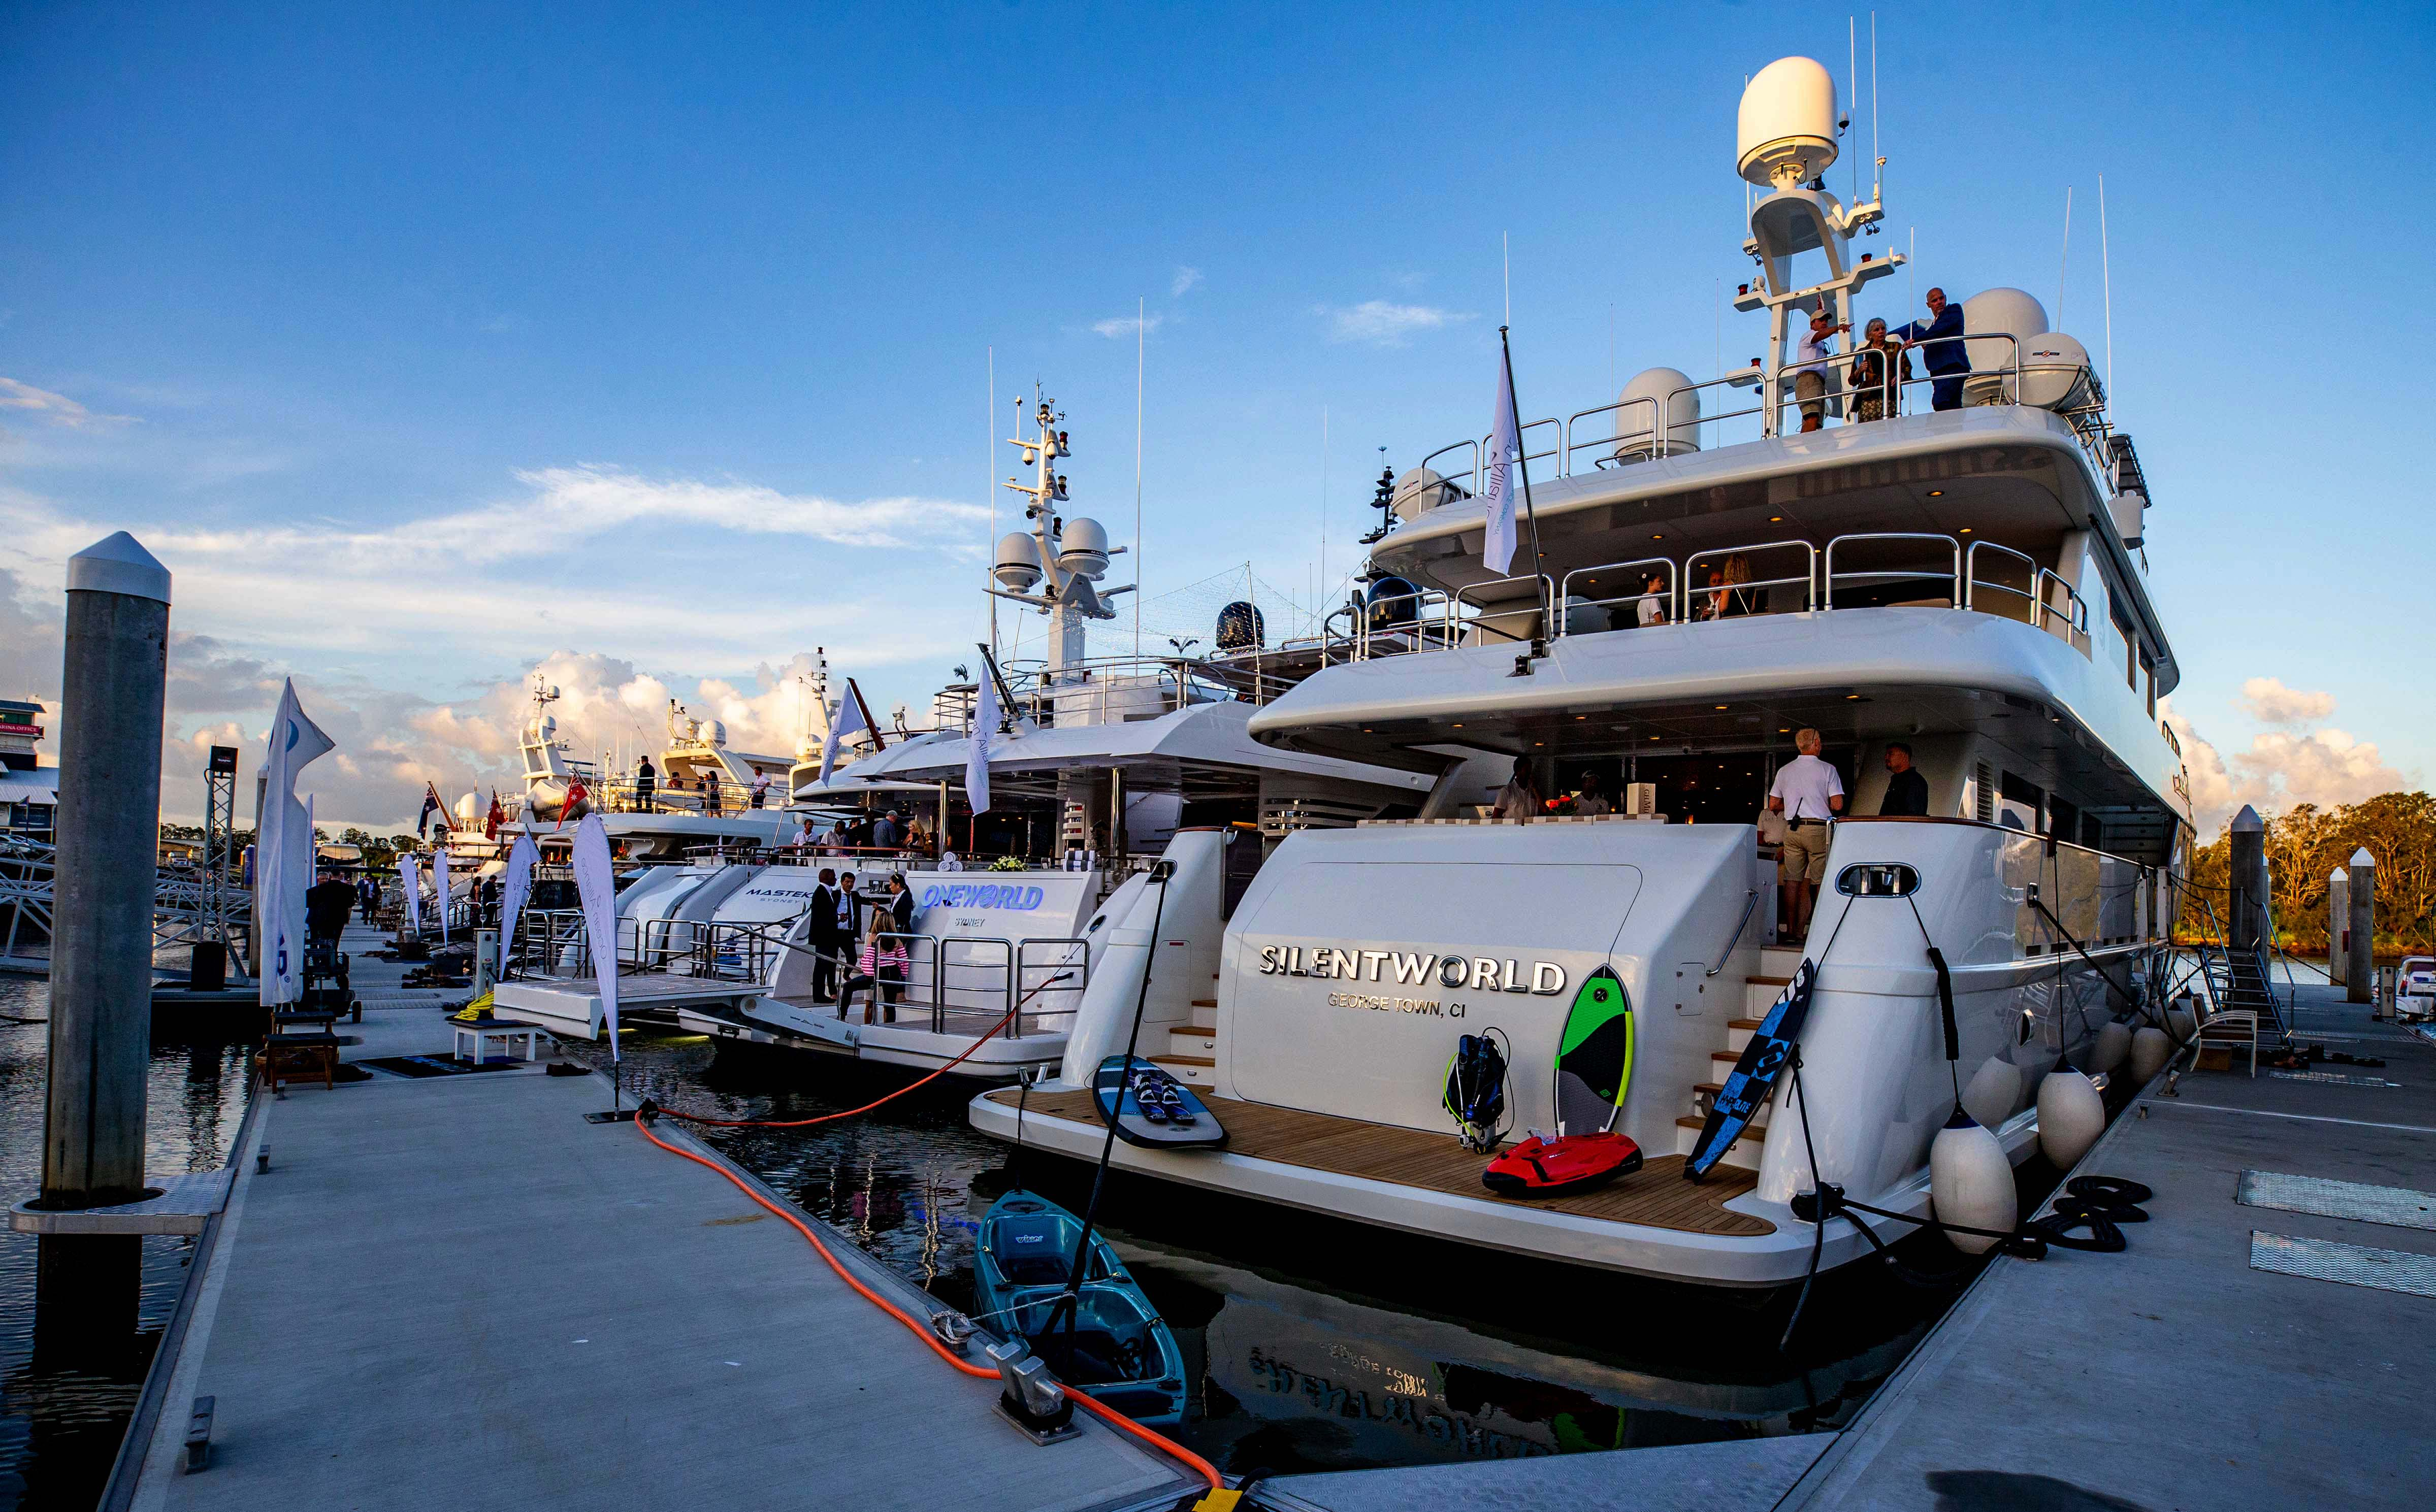 Australia's leading superyachts at the Australian Superyacht Rendezvous